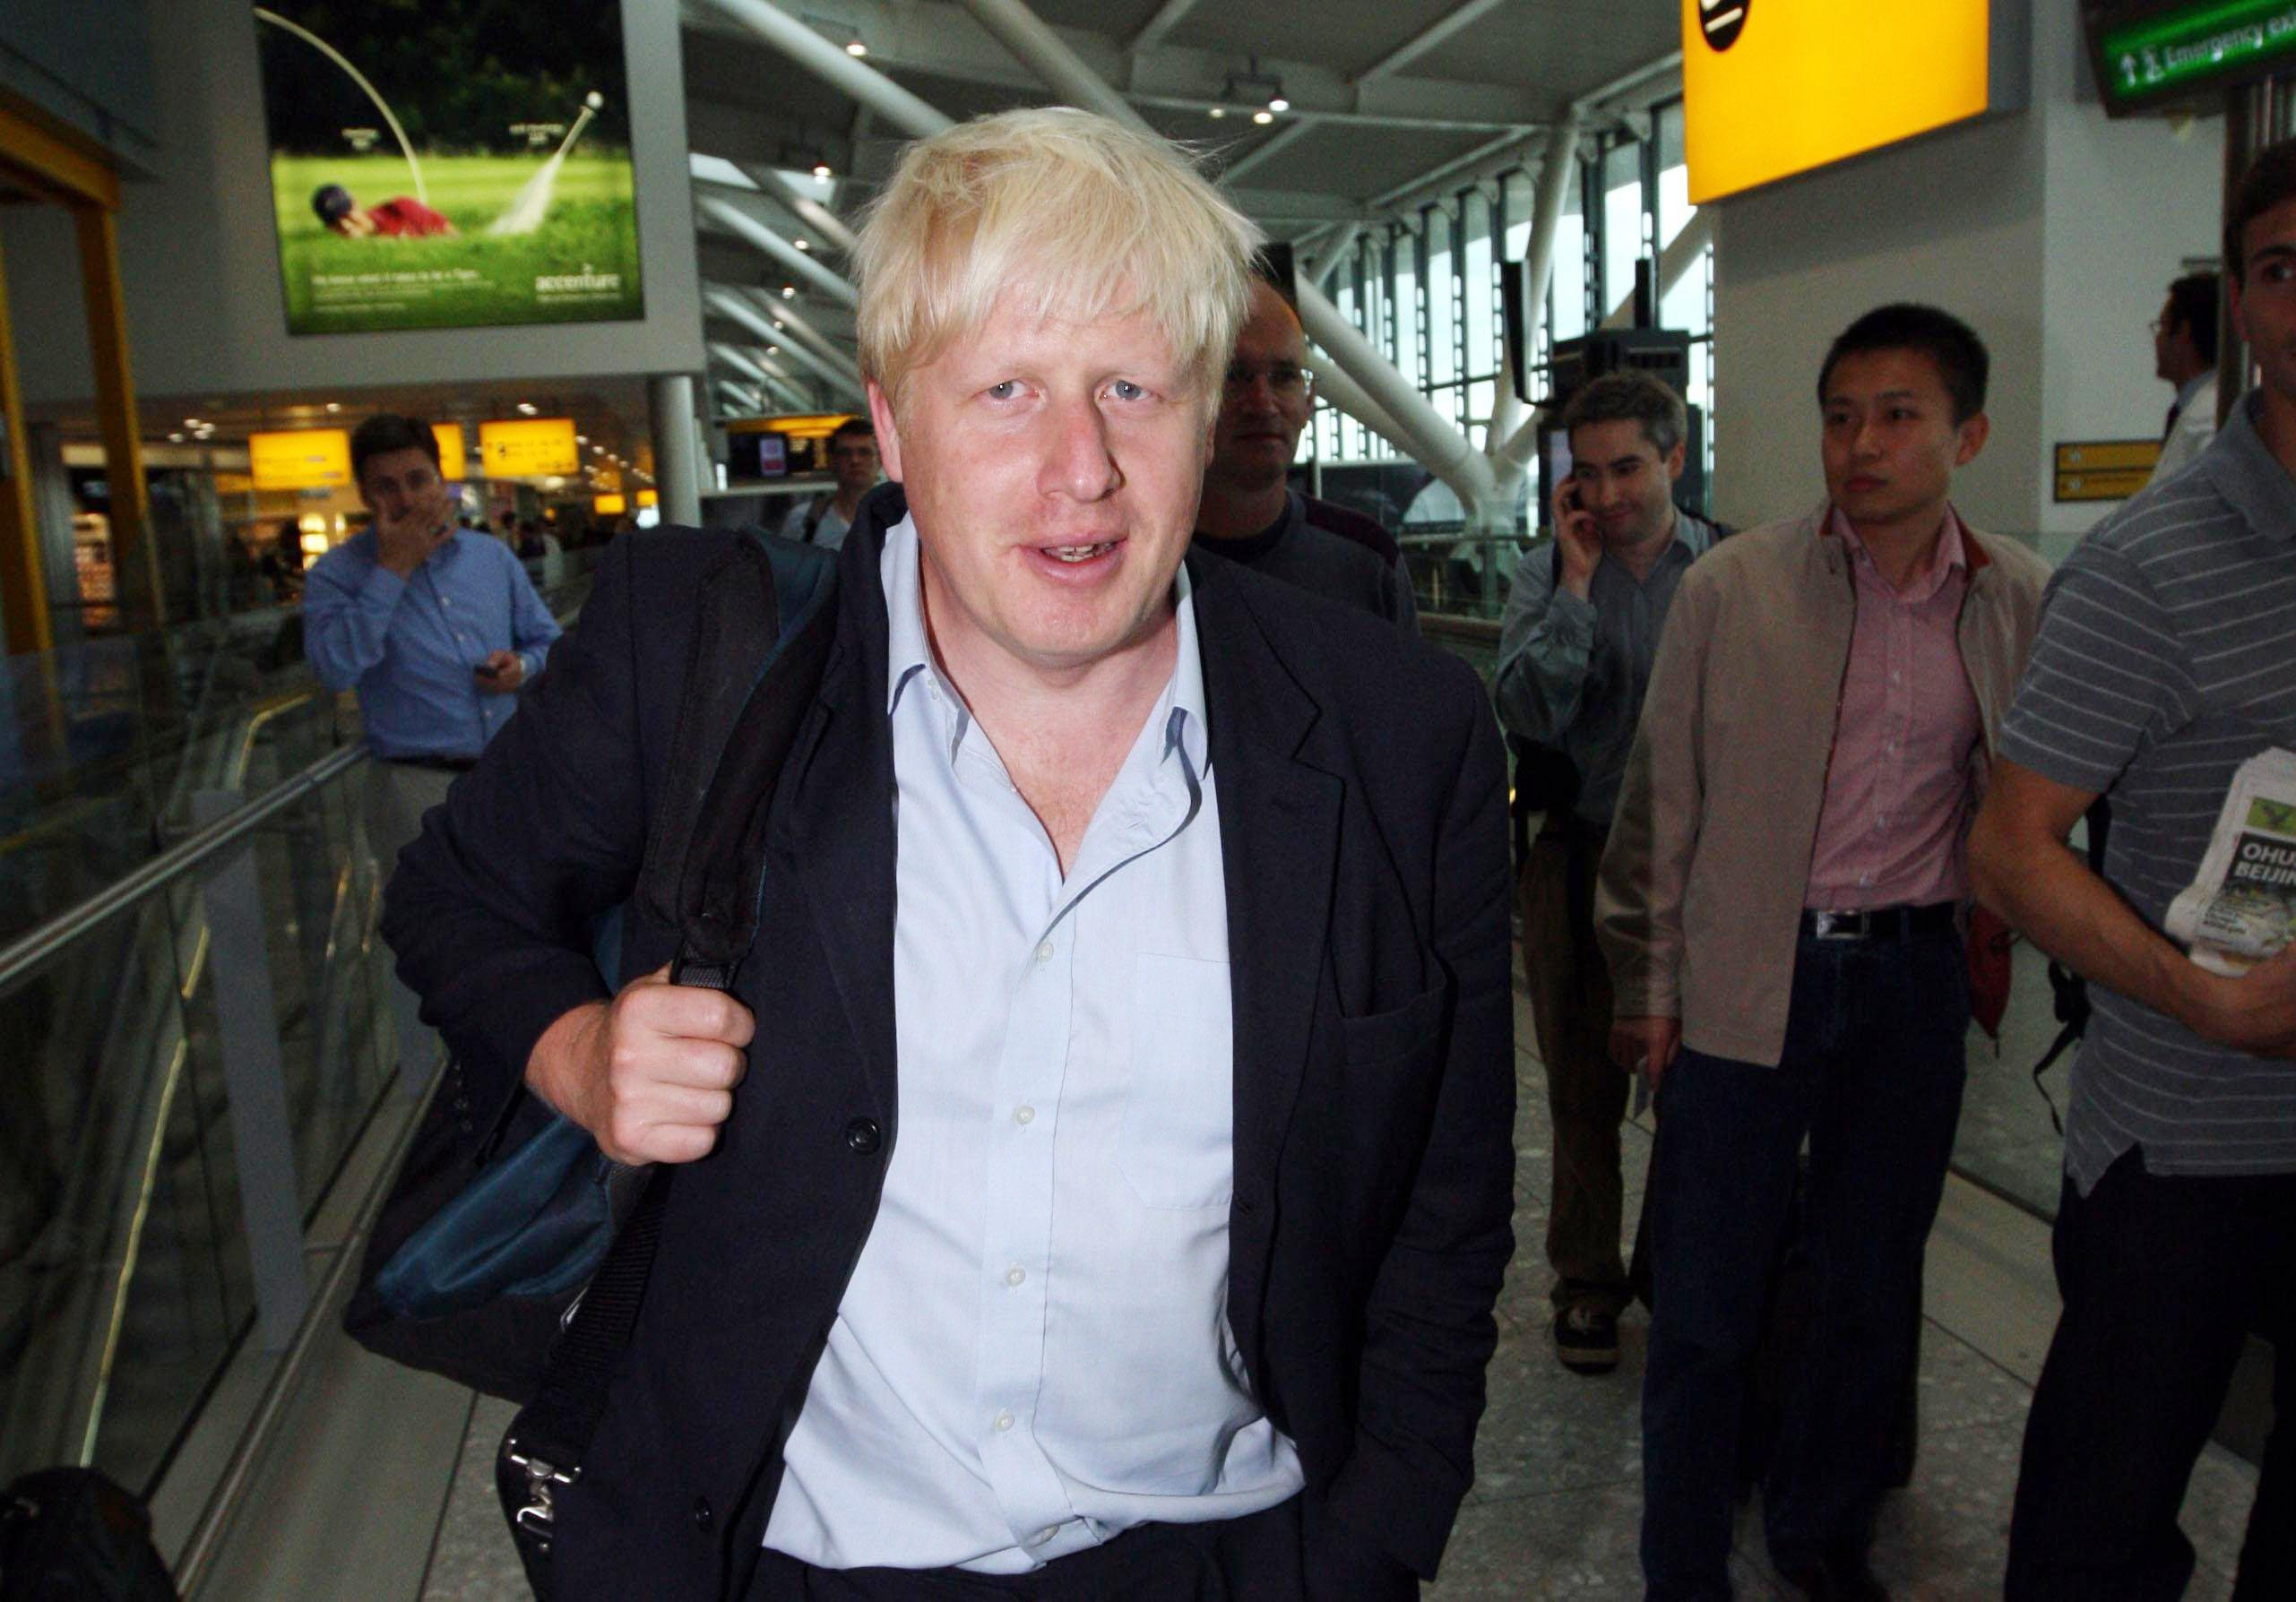 London Mayor Boris Johnson leaves Heathrow Airport's Terminal 5 heading to Beijing for the closing ceremony of the 2008 Olympic games where the flag is then passed on to London.